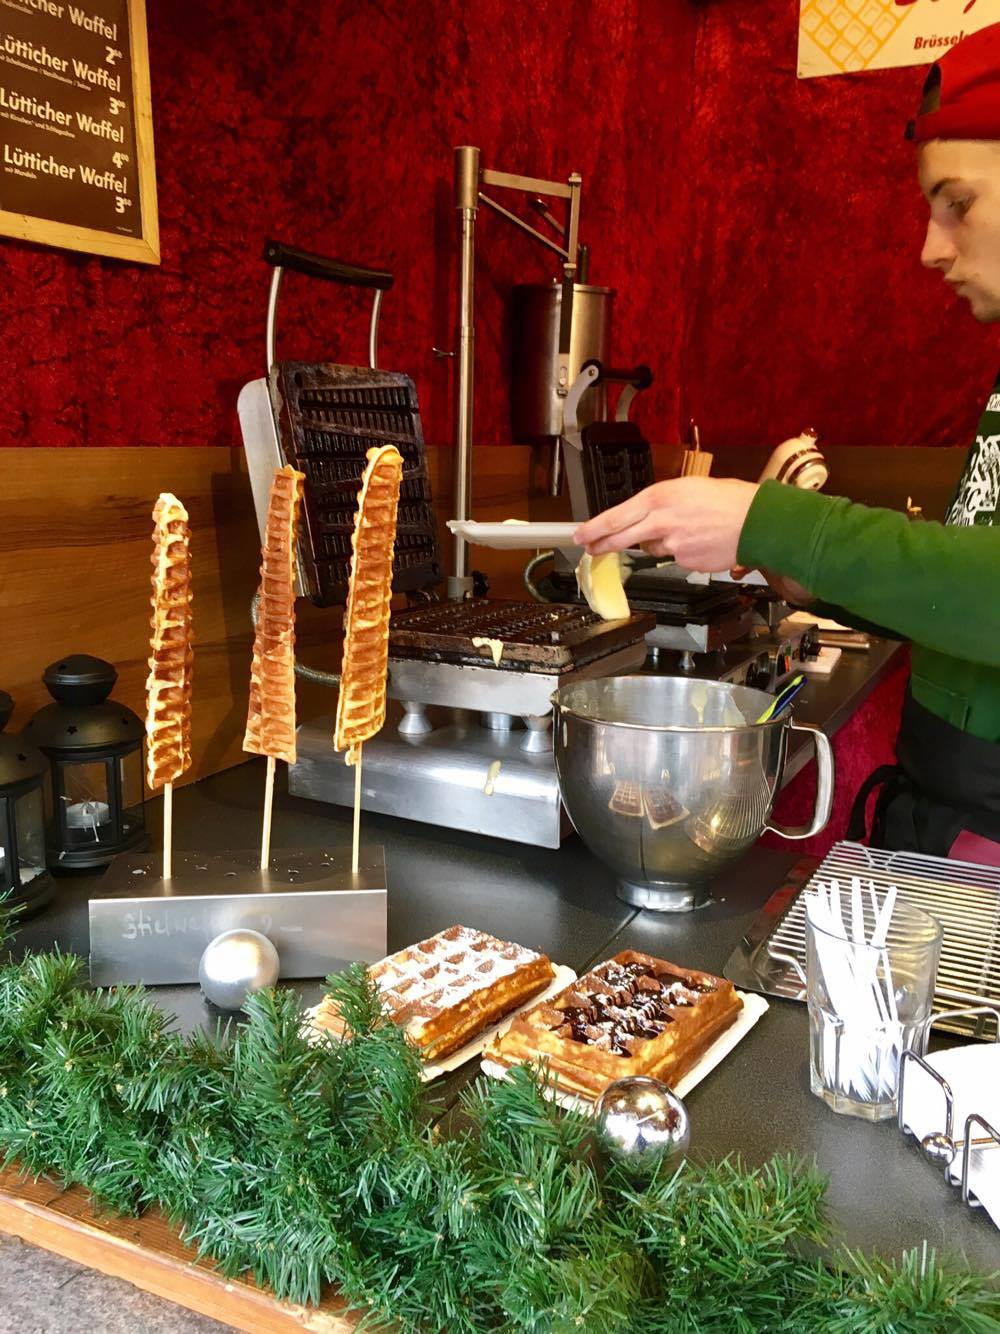 Waffles on a stick? Yes, please.